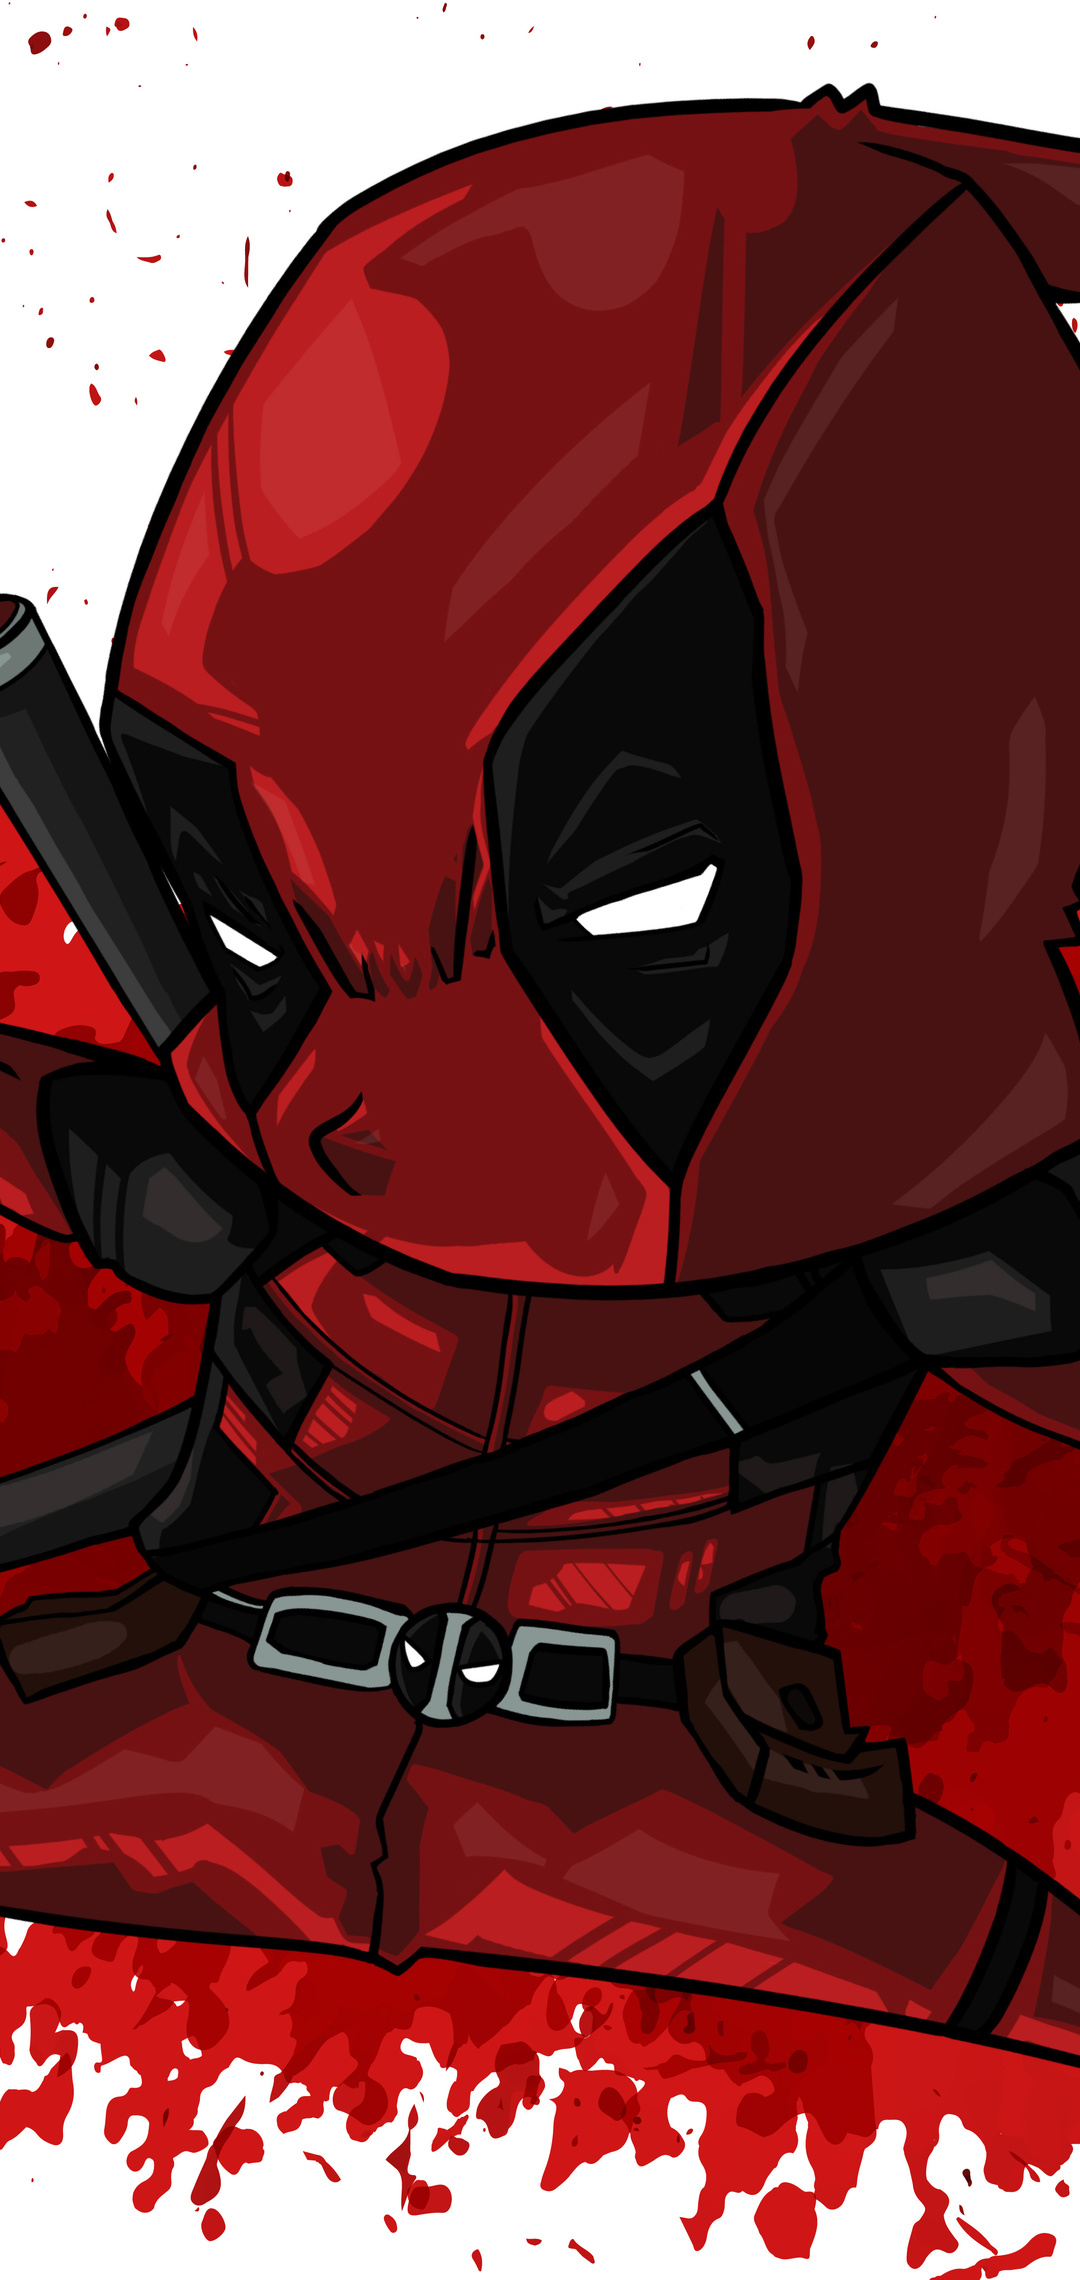 deadpool-artwork-10k-59.jpg